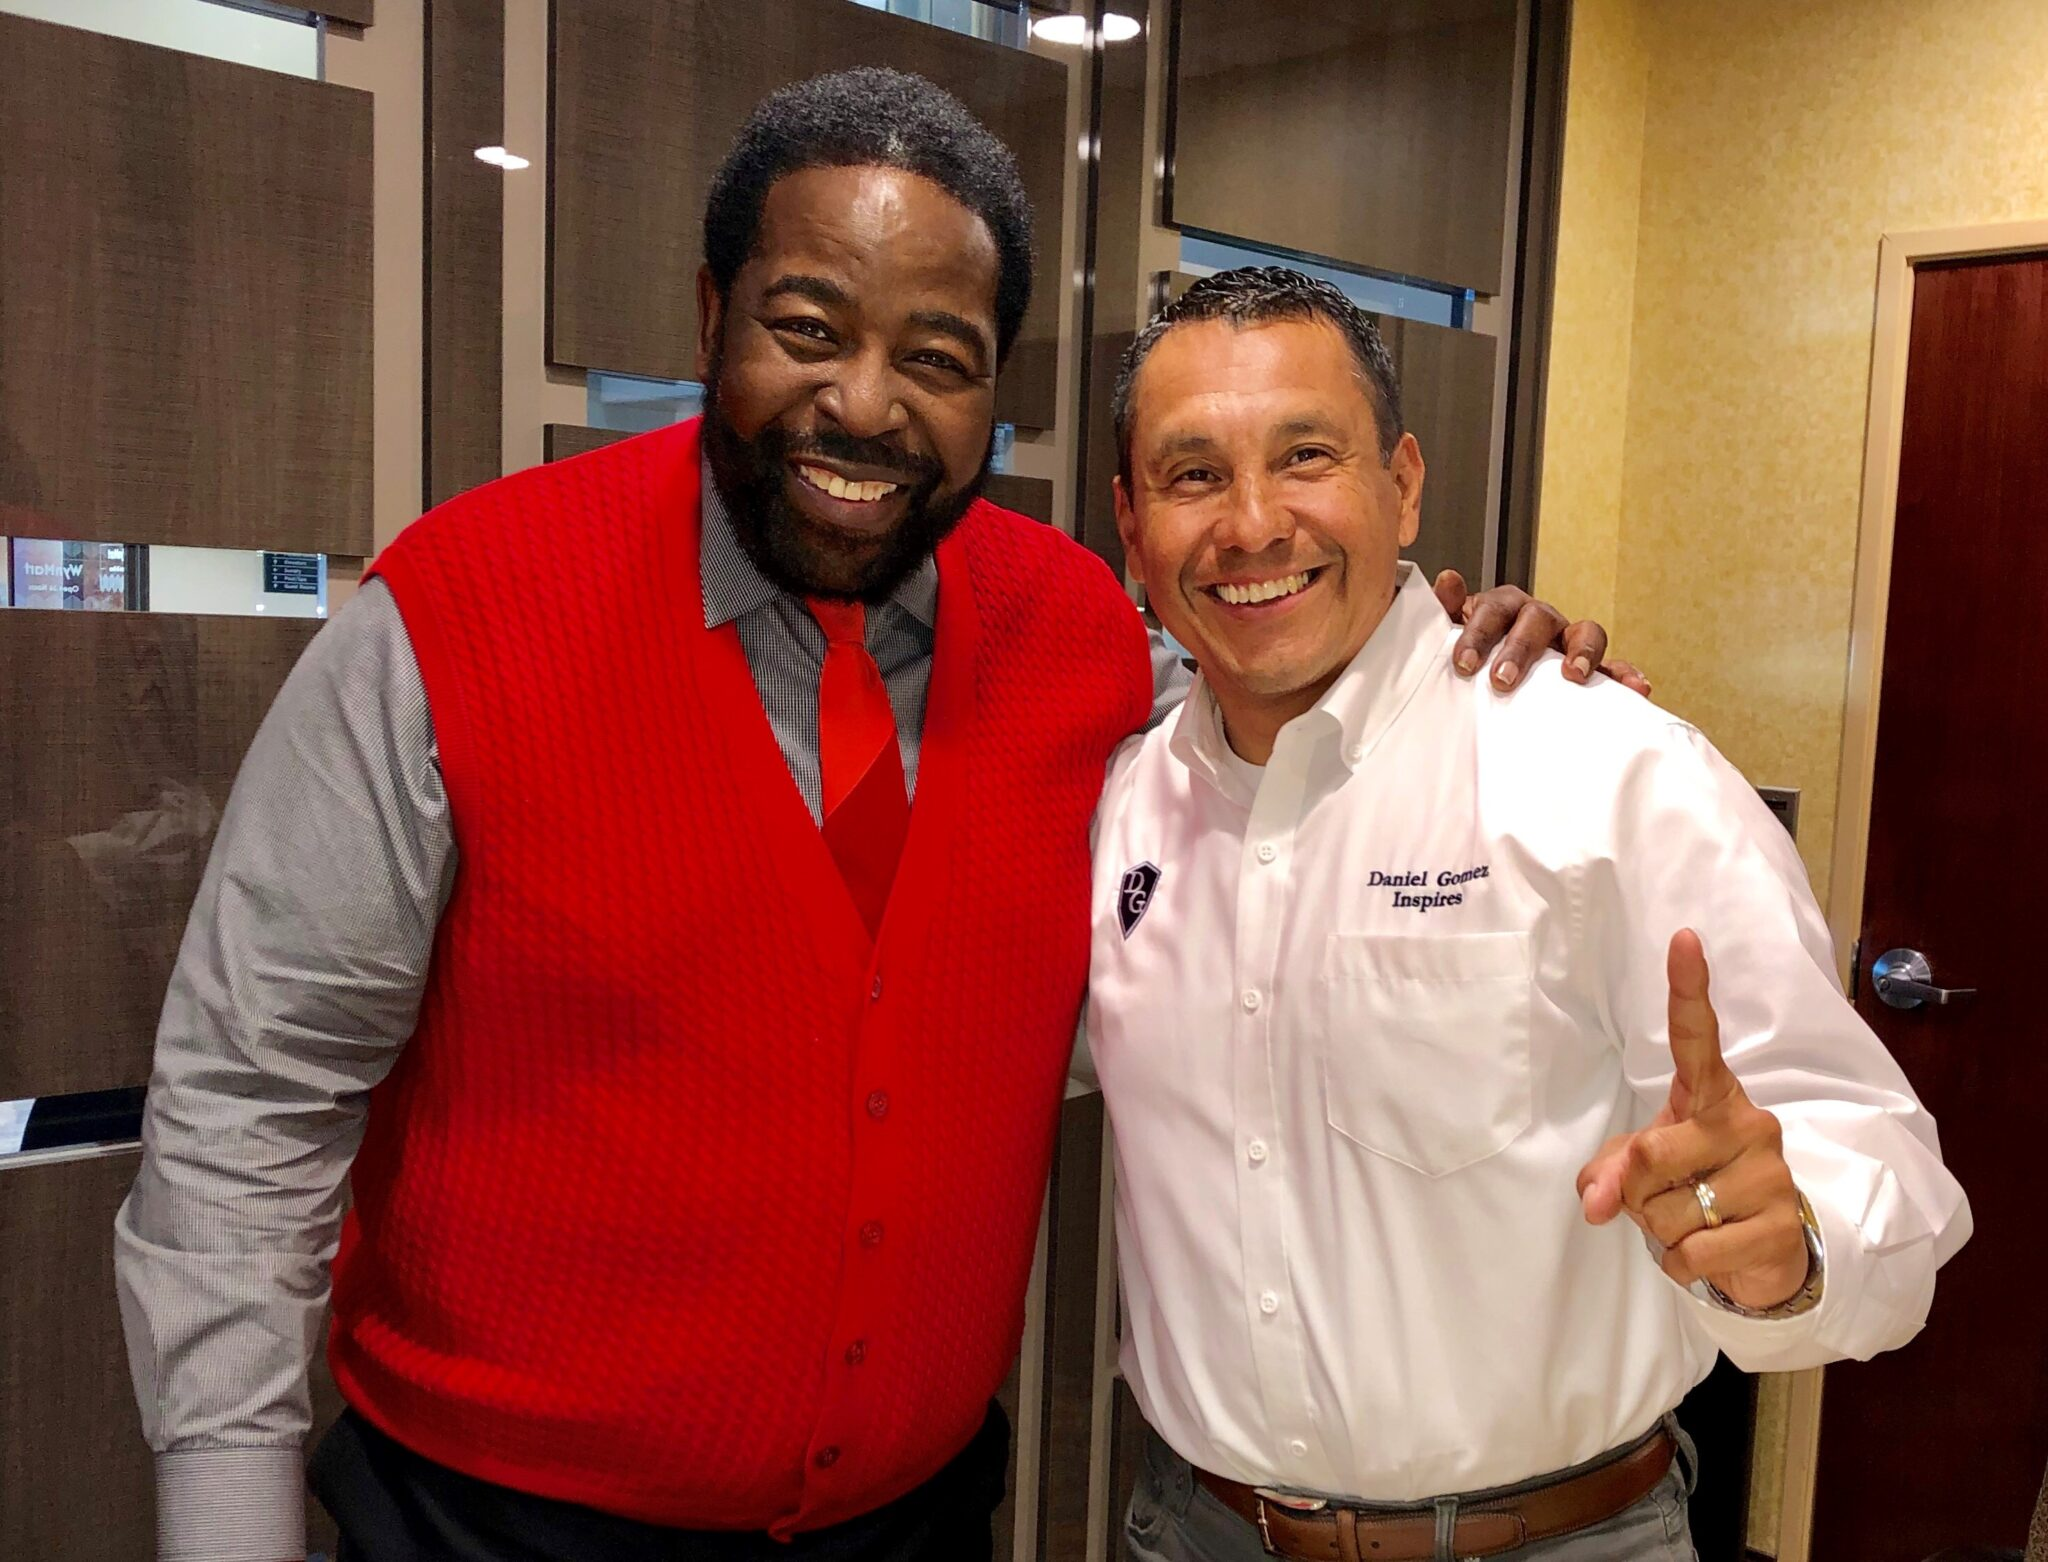 Image of Daniel Gomez Inspires, Les Brown, San Antonio Motivational Keynote Speaker, Corporate Trainer, Confidence Coach, Leadership Development, Team Building, International Speaker